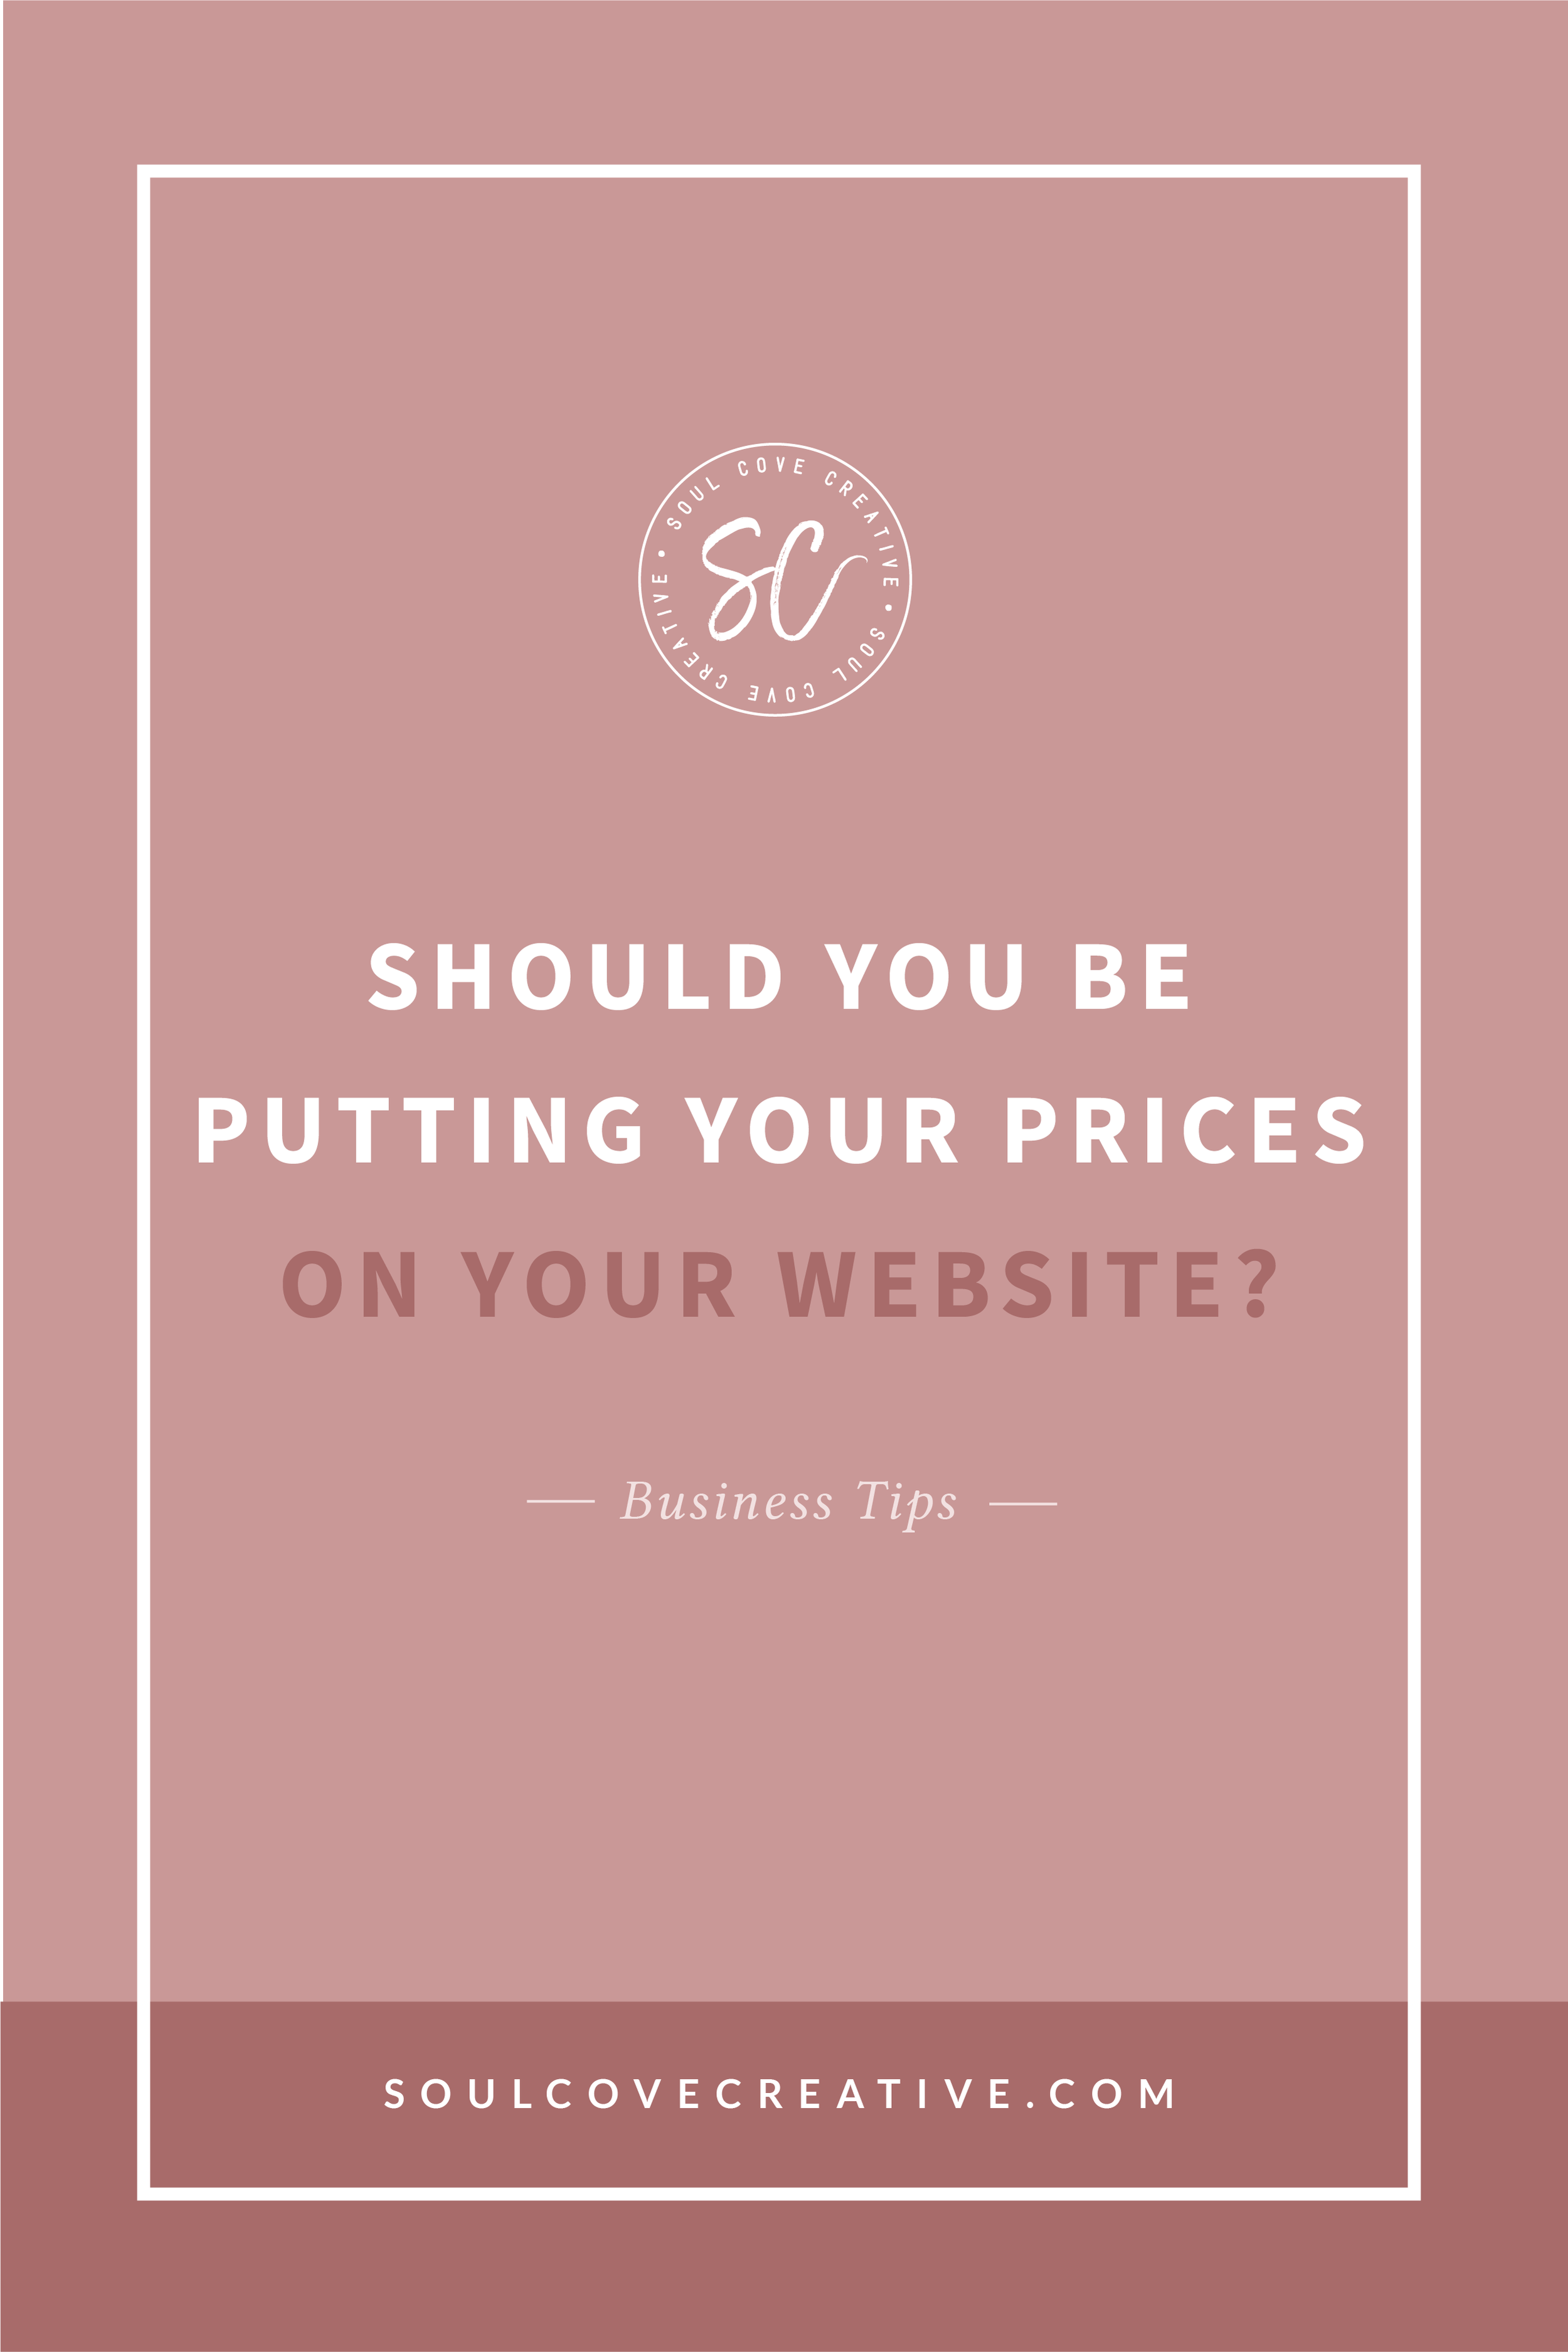 Should you be putting your prices on your website